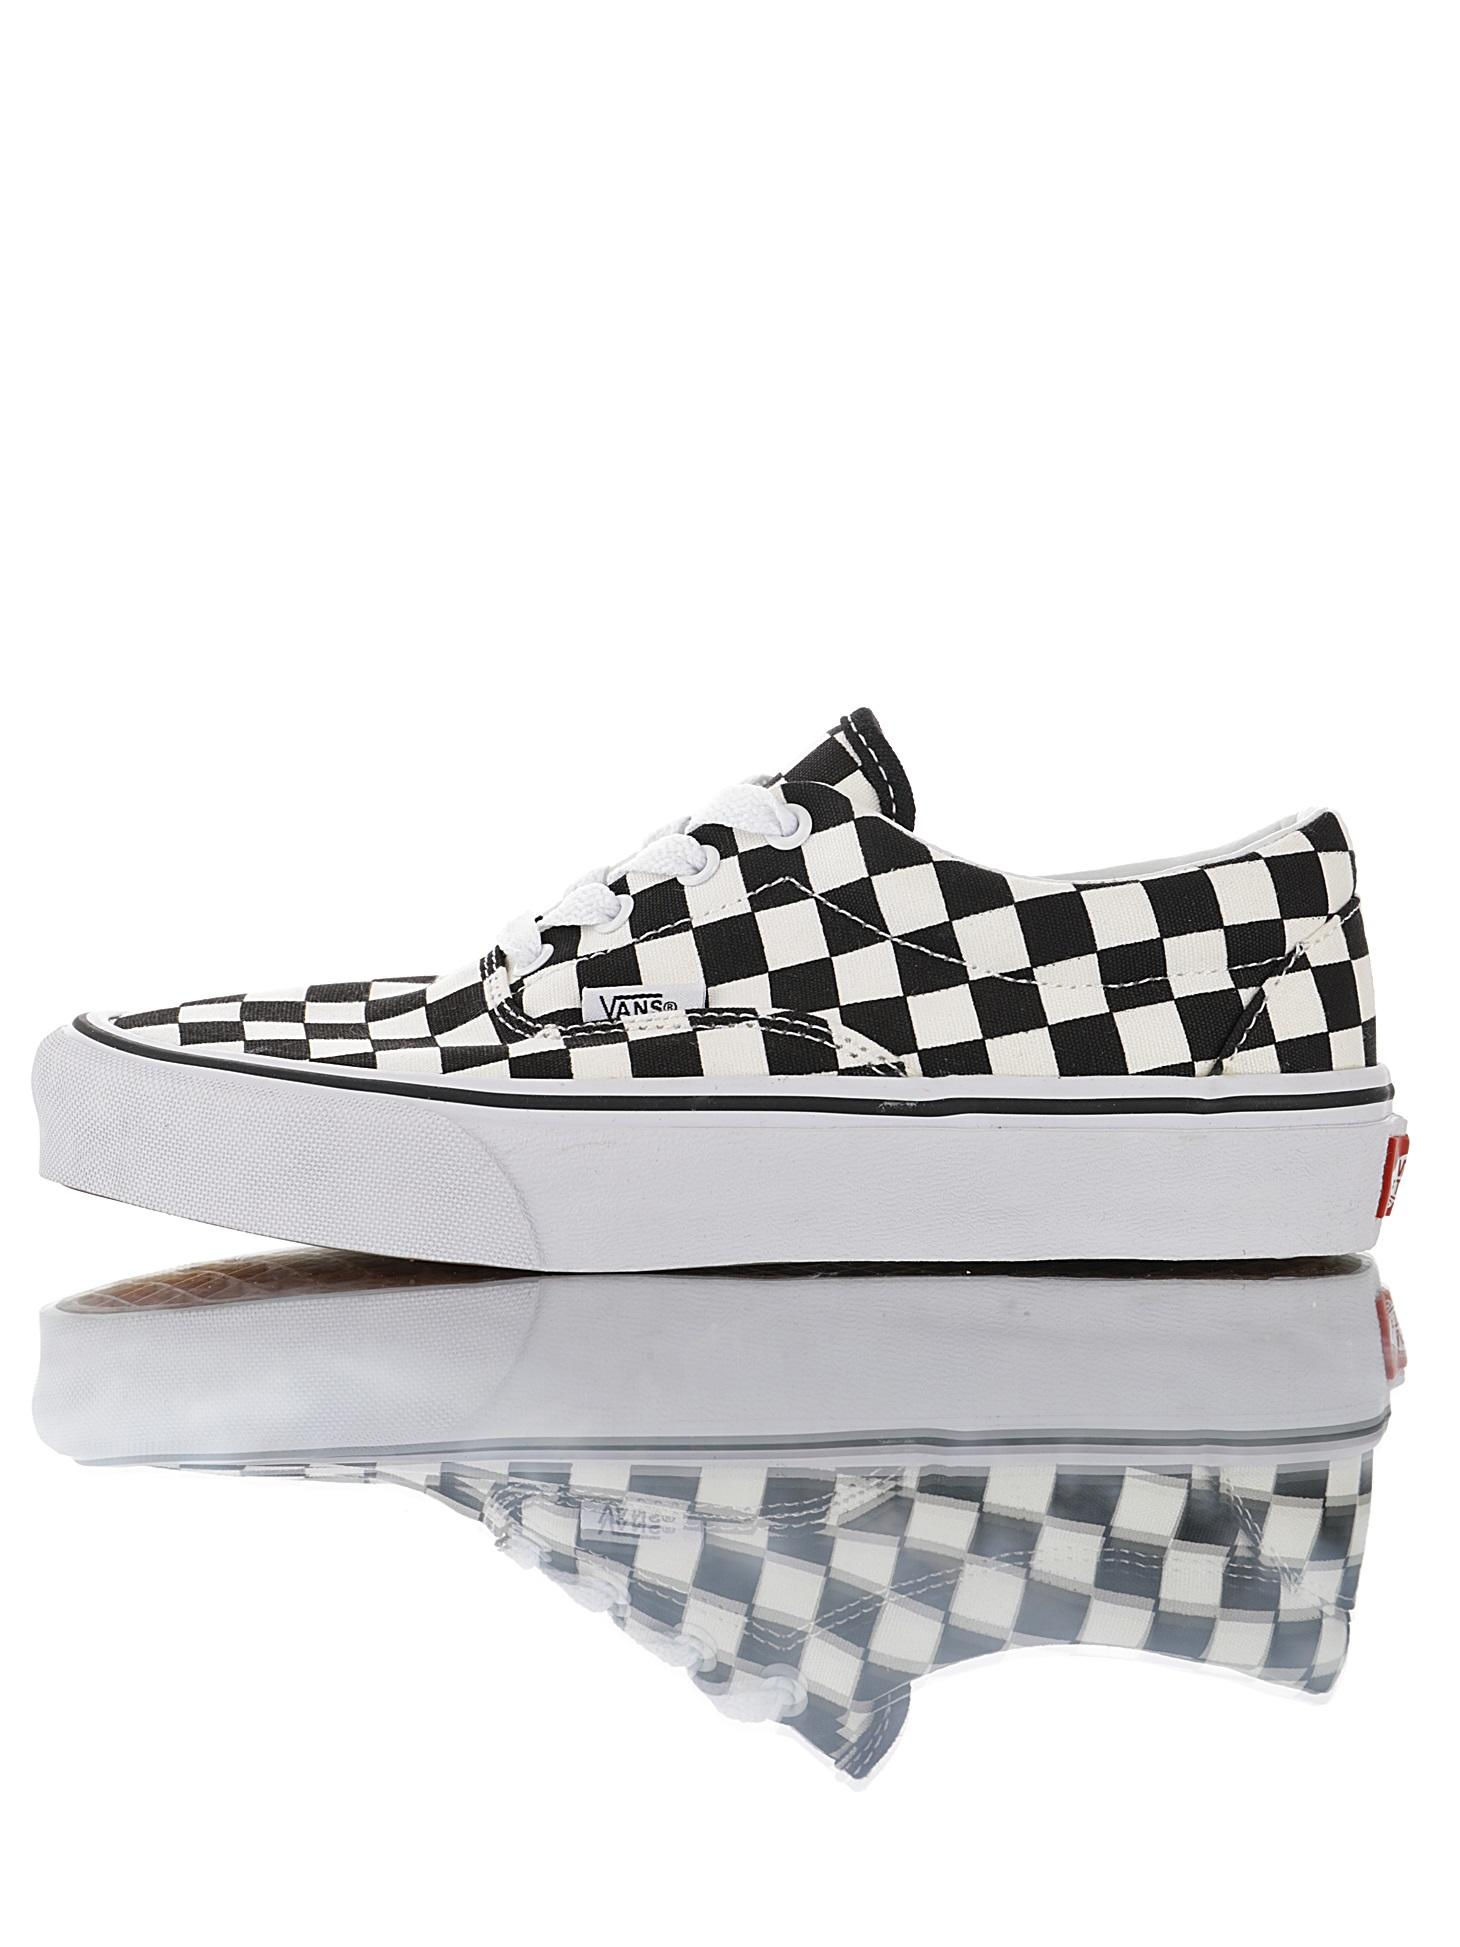 "范斯/Vans Era Crft""White/Checkerboard""4孔低帮百搭休闲帆布硫化板鞋""黑白棋盘格子""VN0A3WLRVPN"